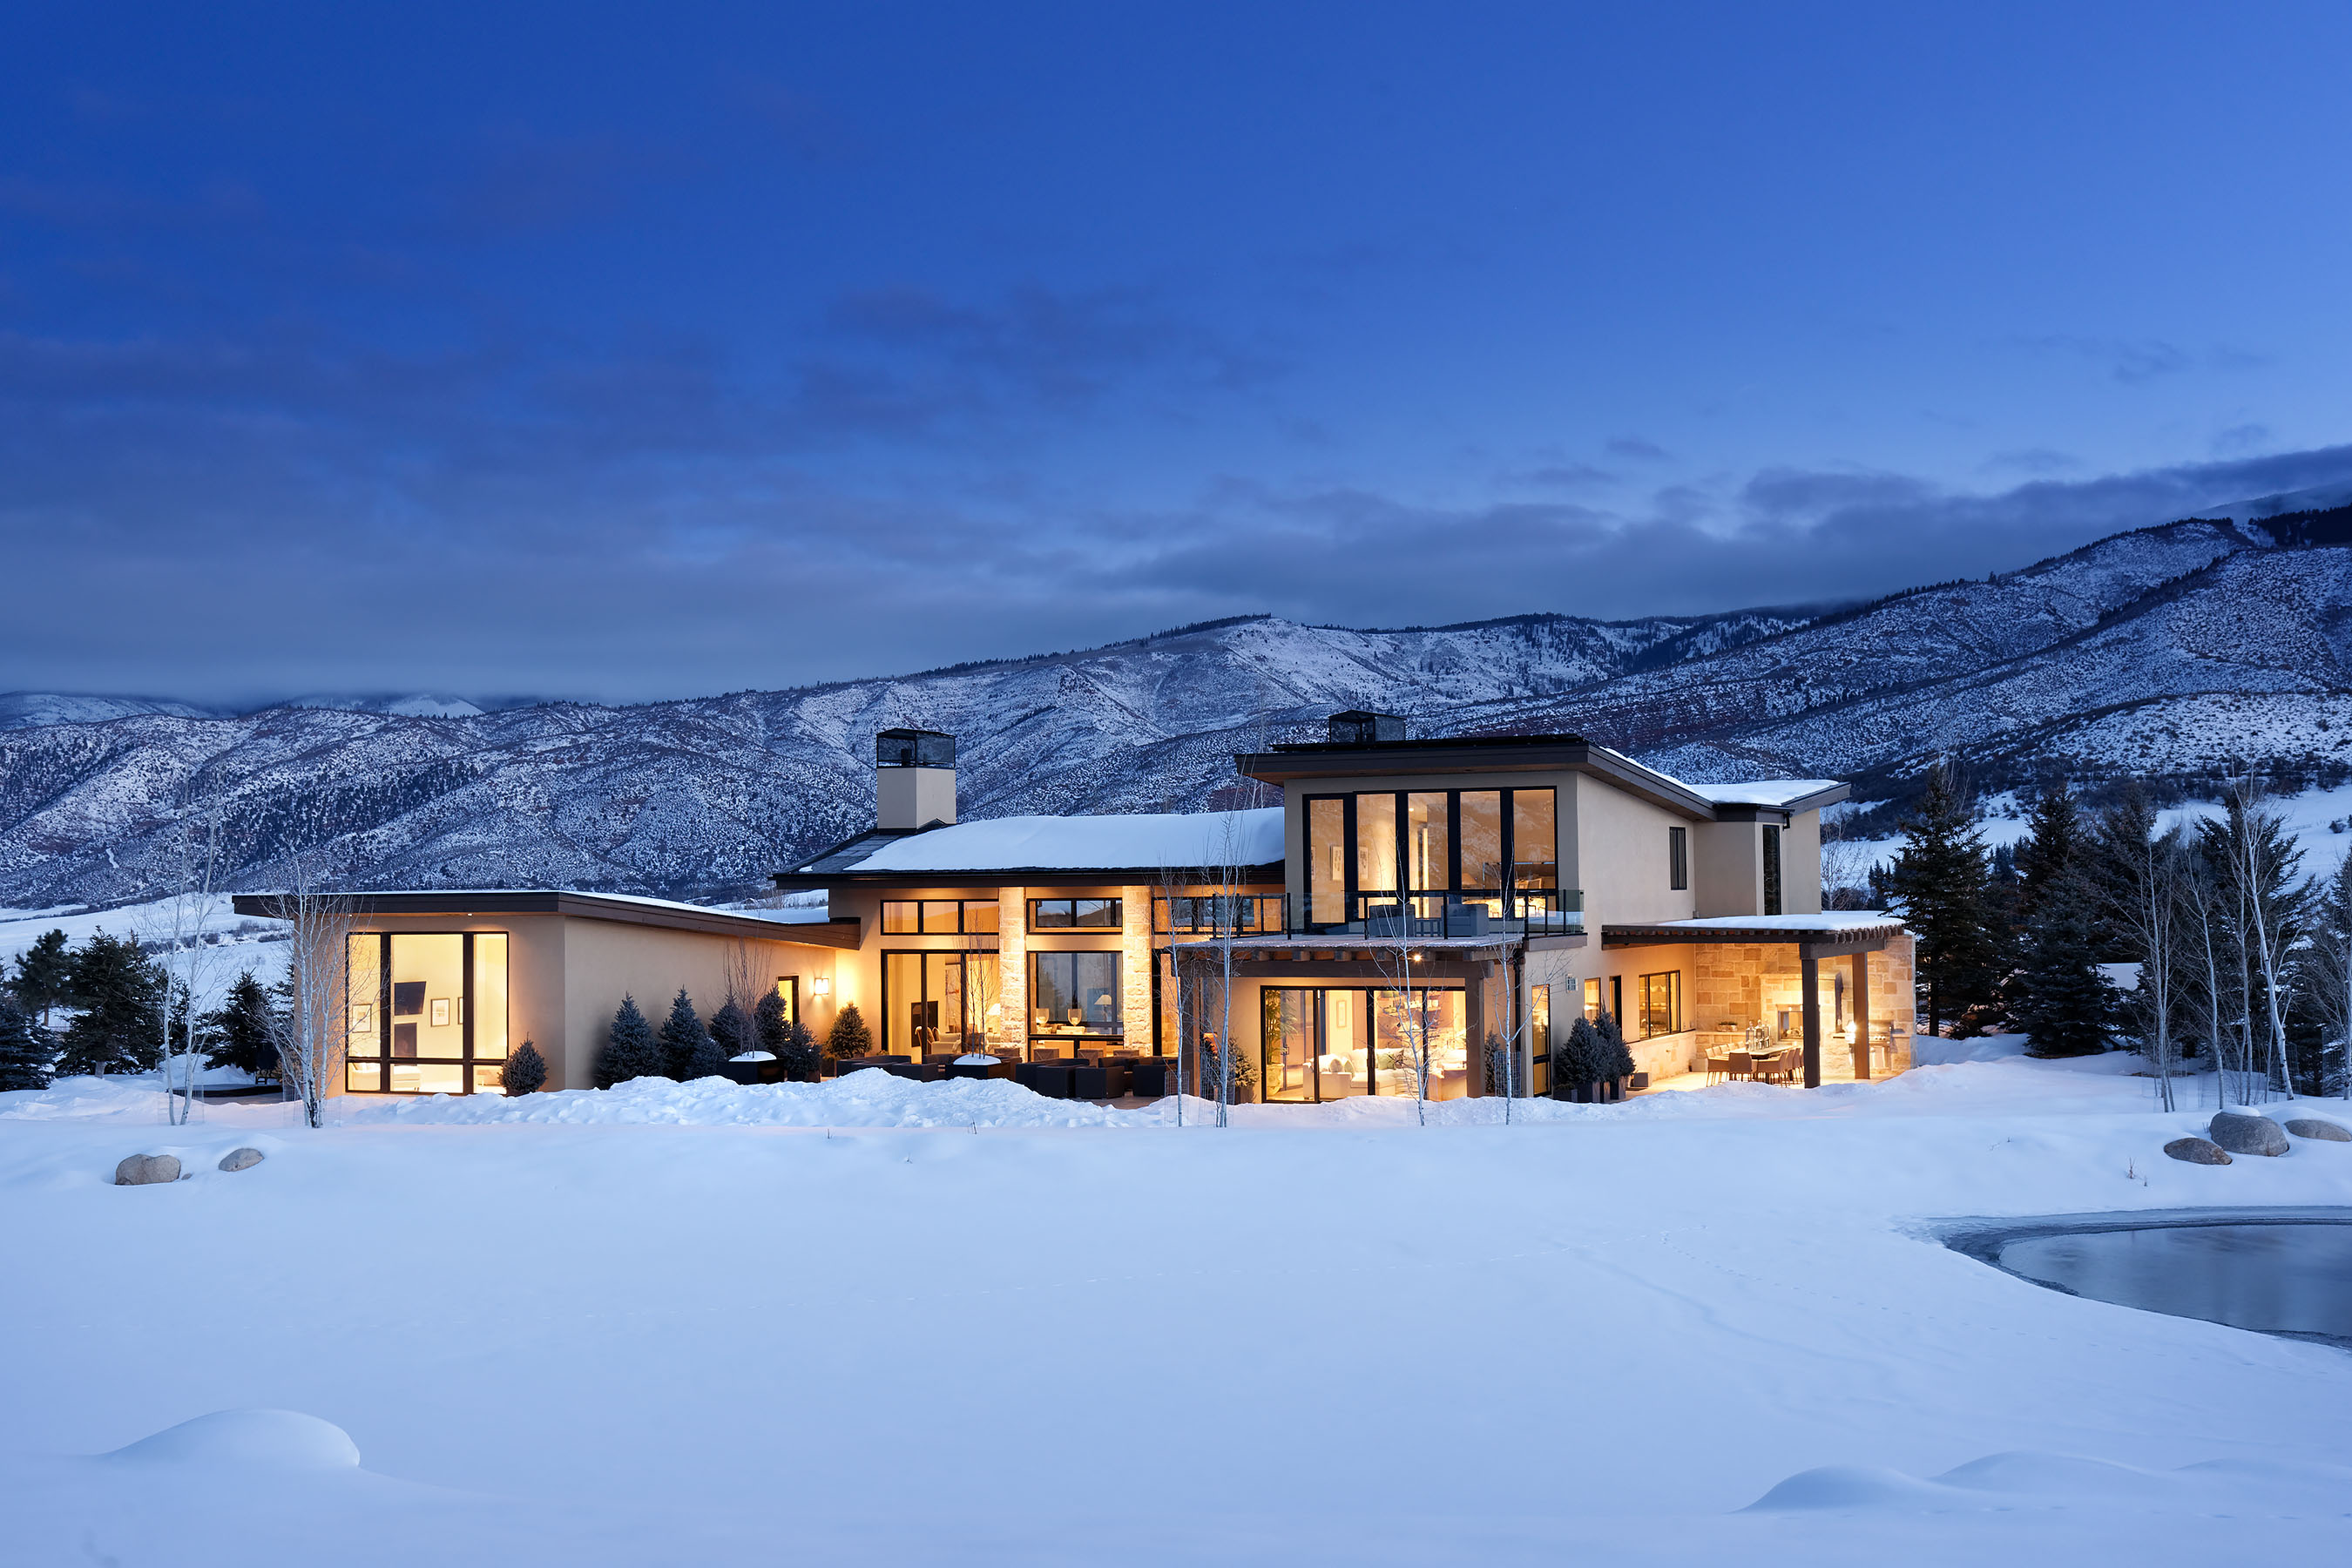 Single Family Home for Sale at Brand New Exclusive Star View Estate 51 White Star Drive Aspen, Colorado, 81611 United States